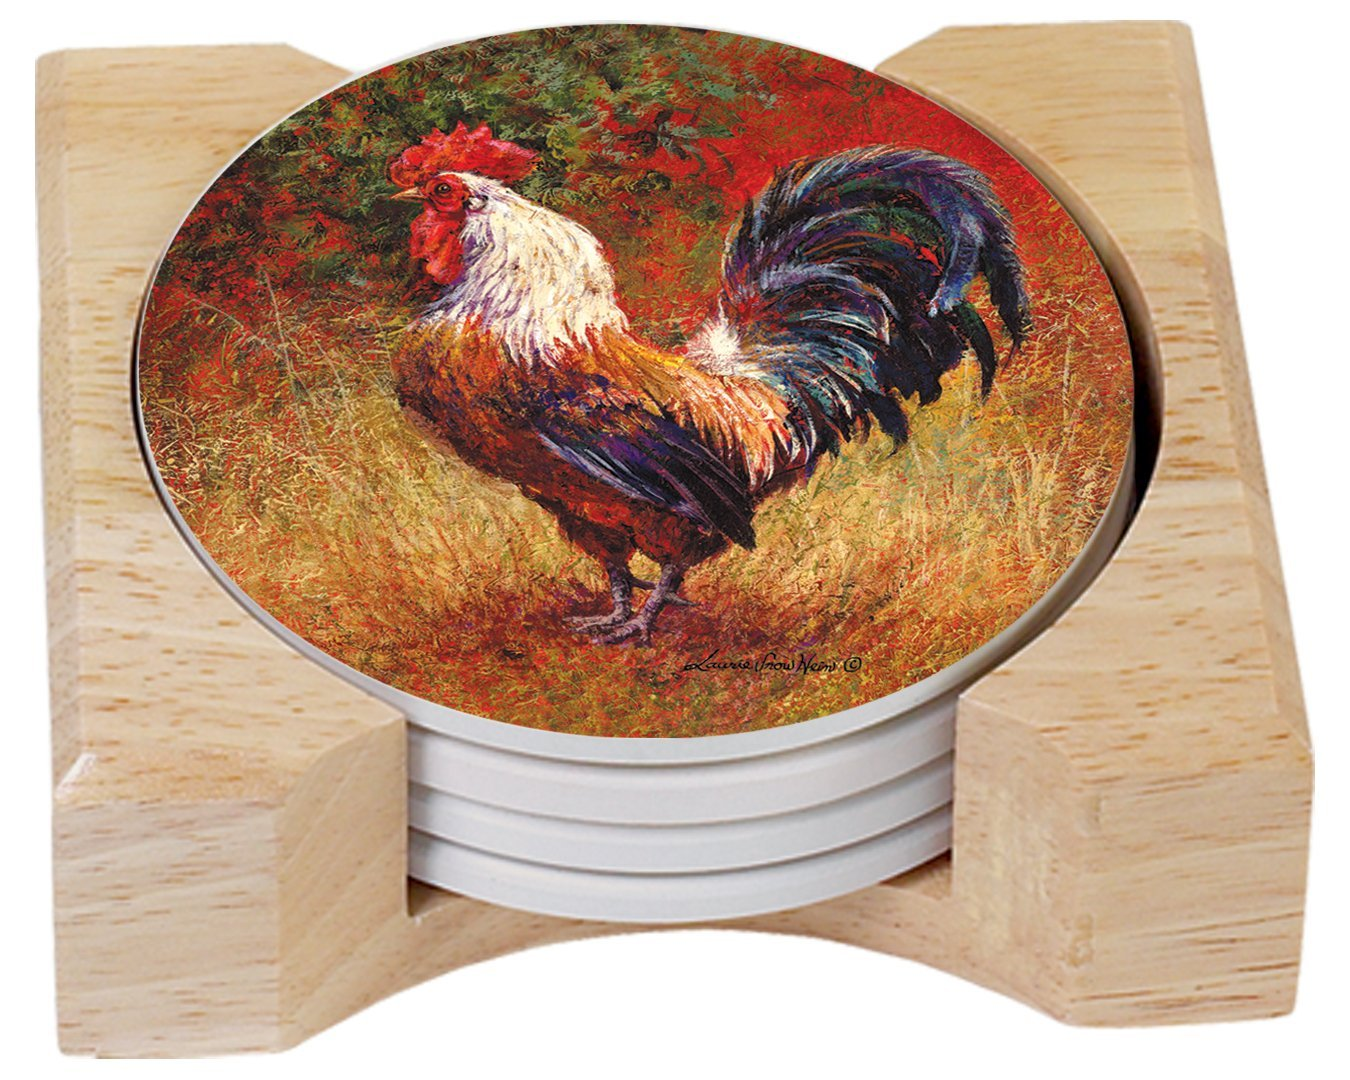 CounterArt Wrought Iron Rooster Design Absorbent Coasters in Wooden Holder, Set of 4